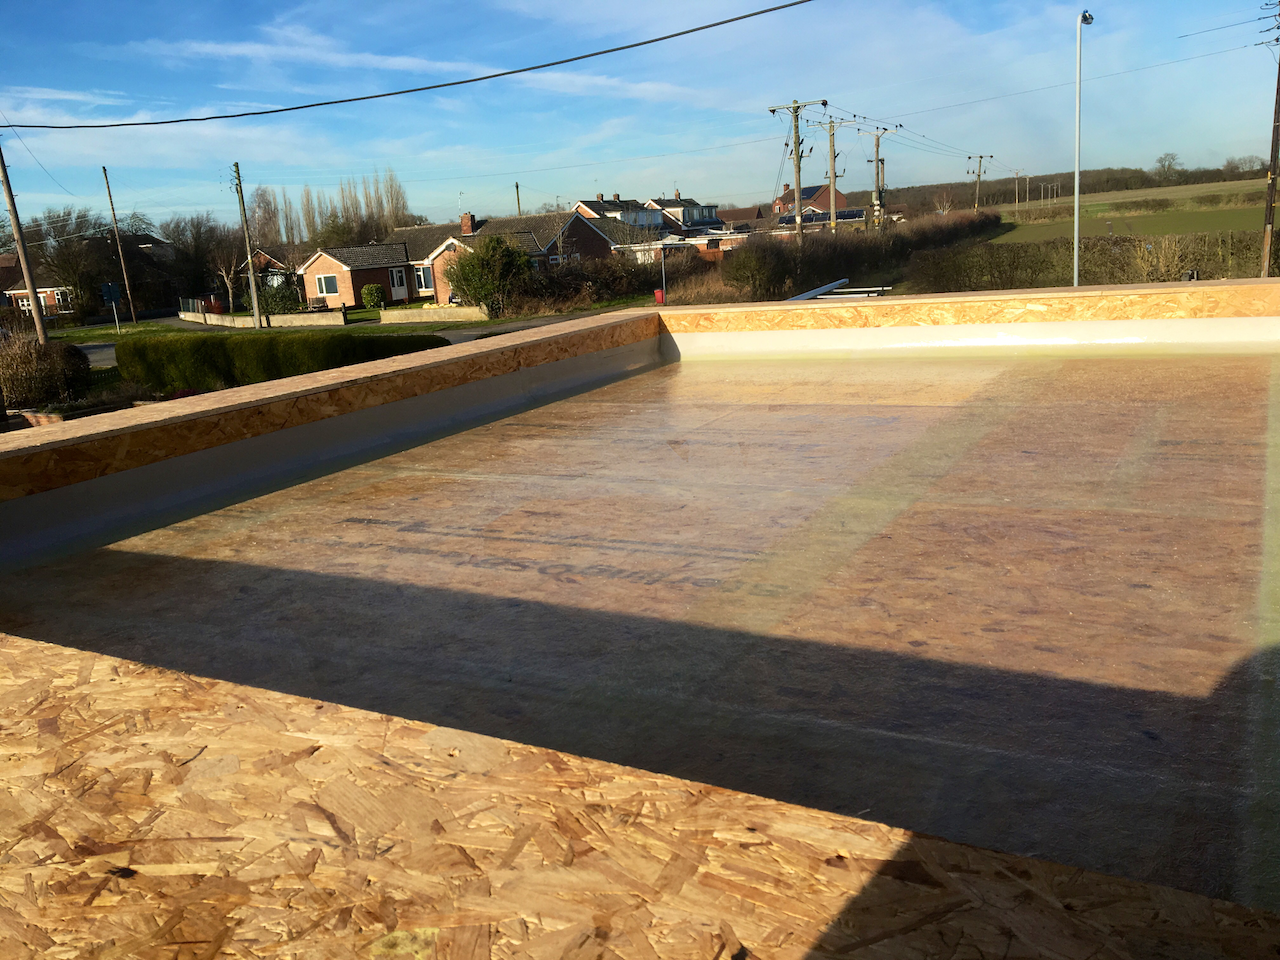 https://www.bluedotroofing.uk/wp-content/uploads/2018/02/grp-flat-roof-marton-lincolnshire-1.png